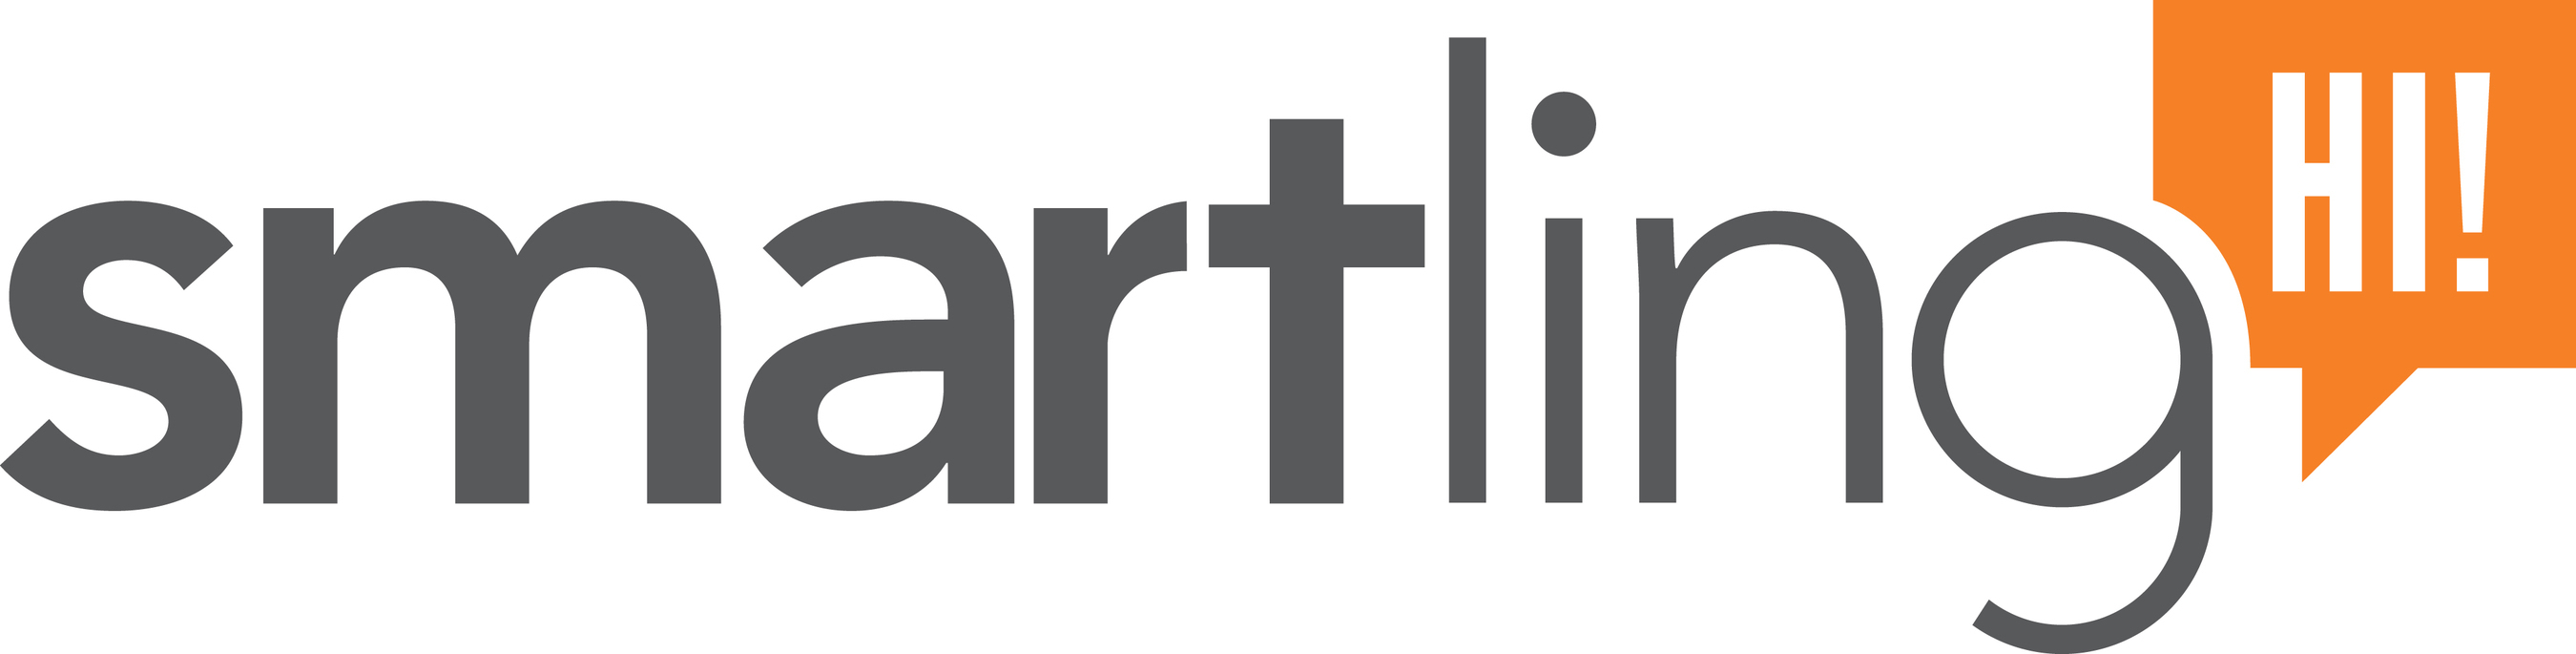 Smartling Officially Launches U.K. Presence with Kick-off Event for Local Customers and Prospects in London